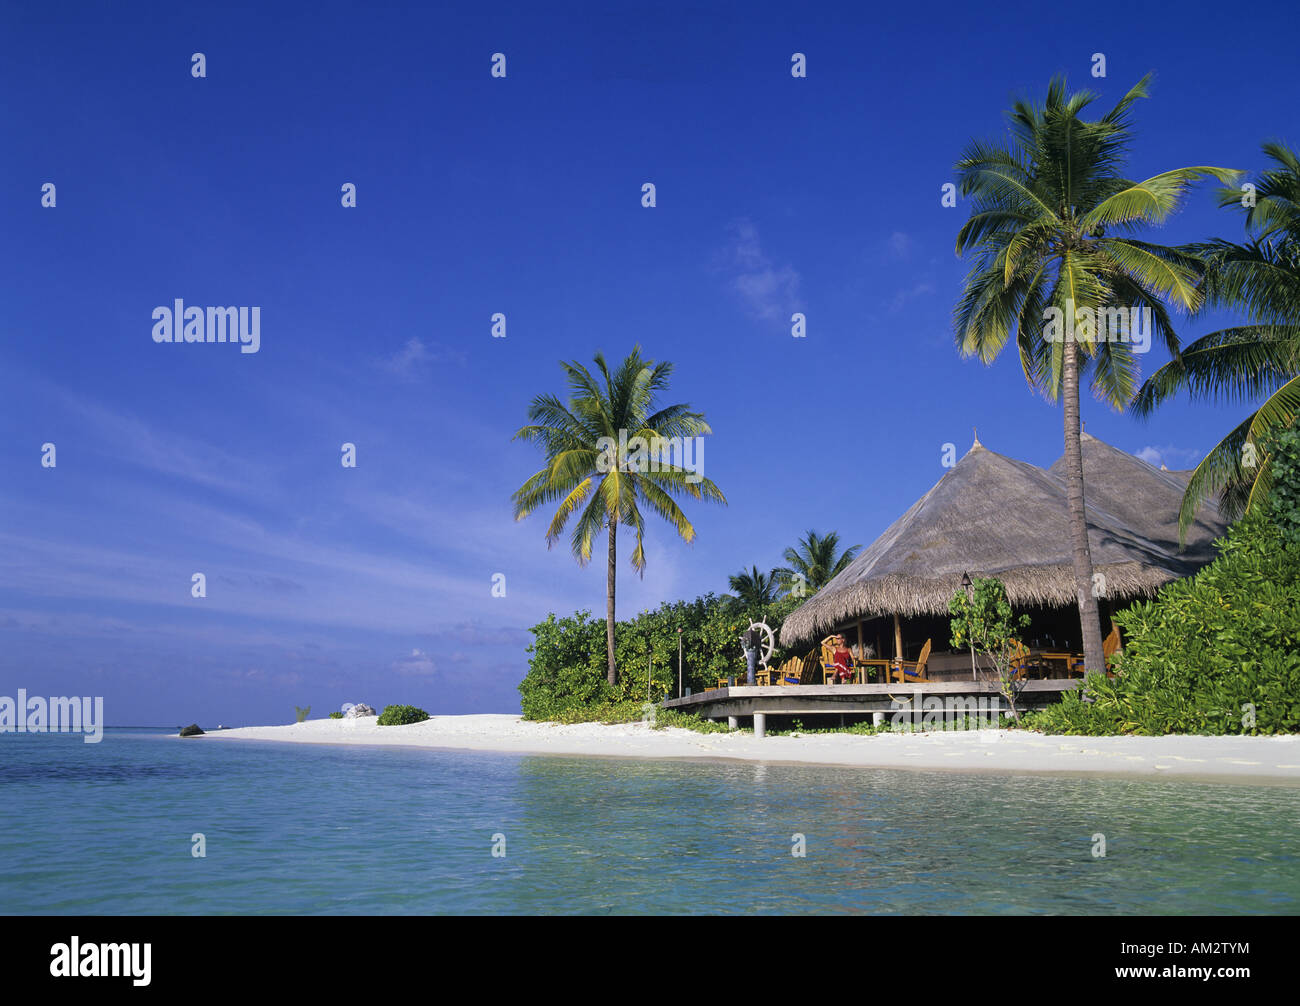 geography / travel, Maledives, Kuda Huraa Island, beach restaurant with palm trees, Additional-Rights-Clearance - Stock Image